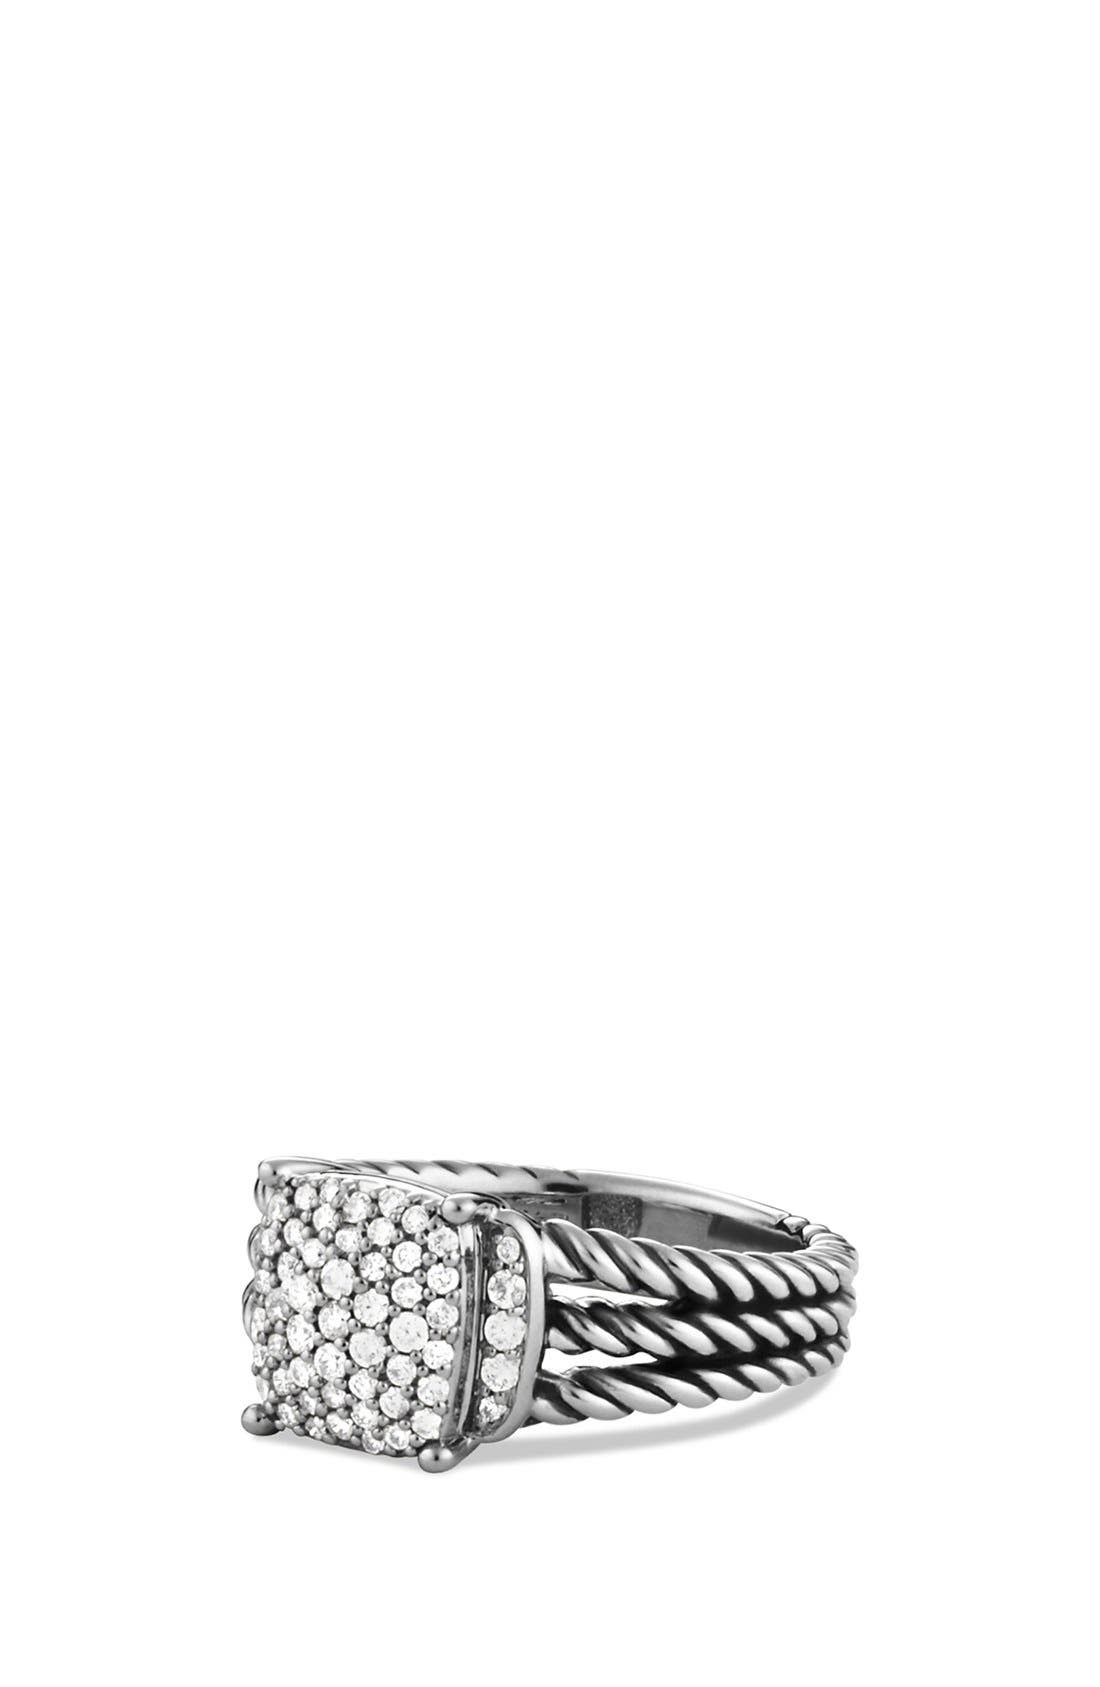 David Yurman 'Wheaton' Petite Ring with Diamonds